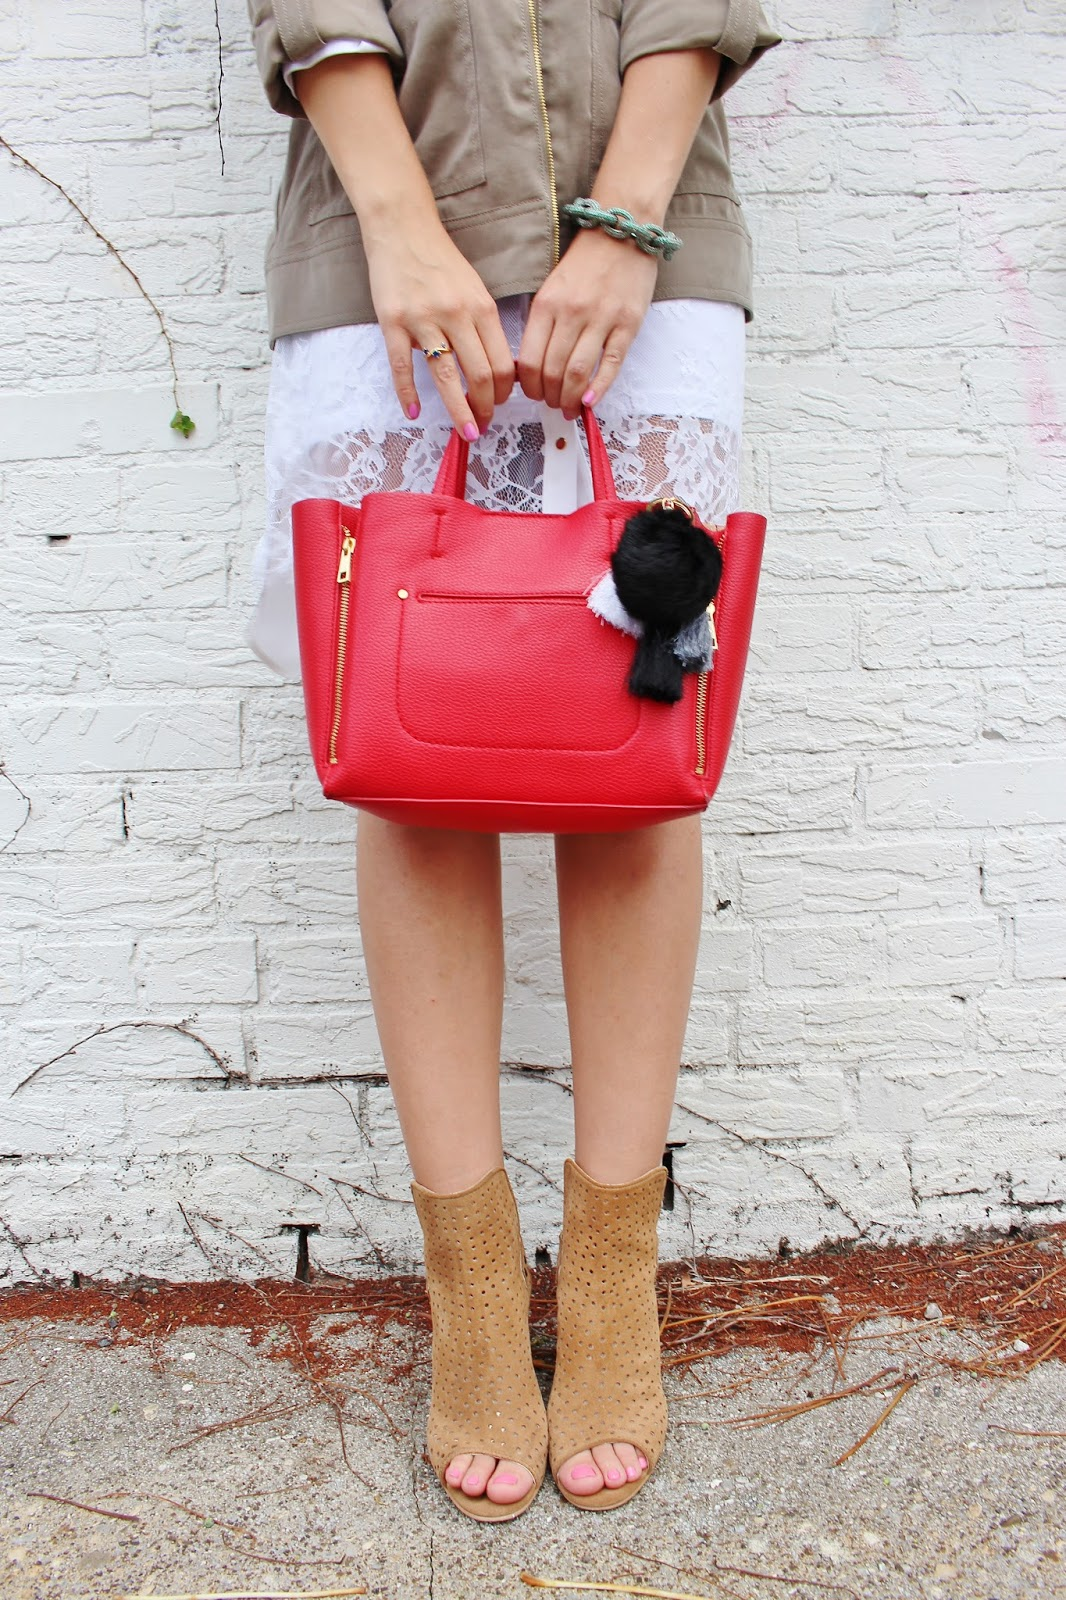 bijuleni- booties and Ann Taylor red tote